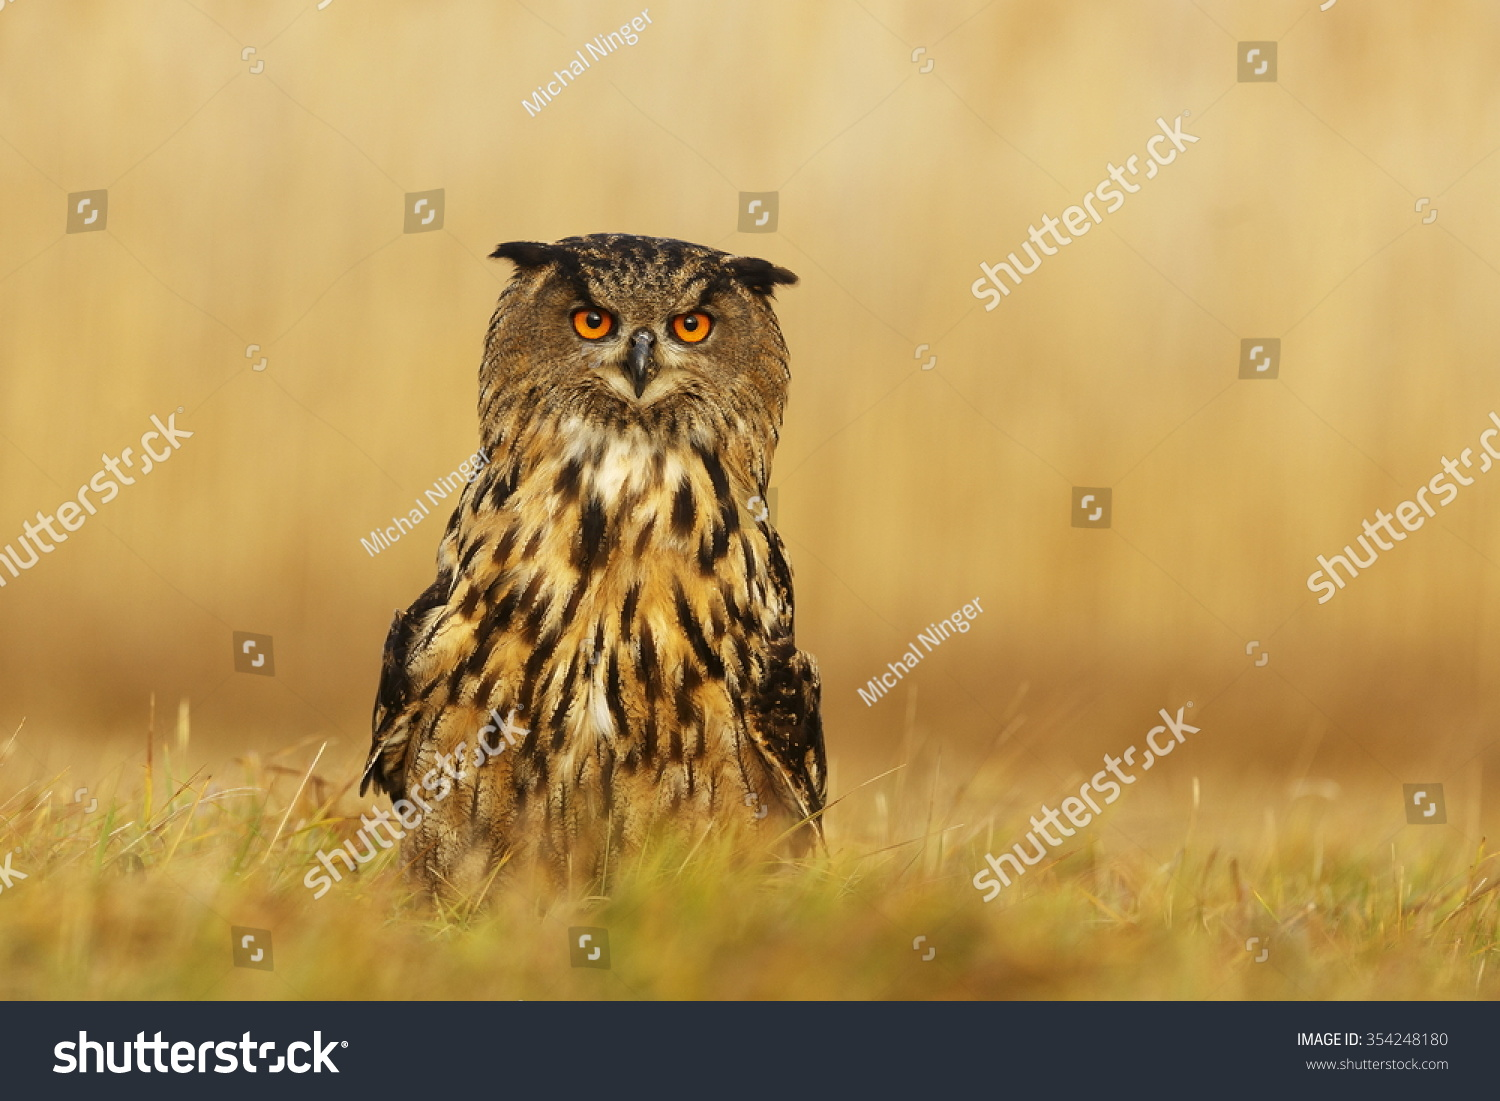 eagle owl stretches his neck